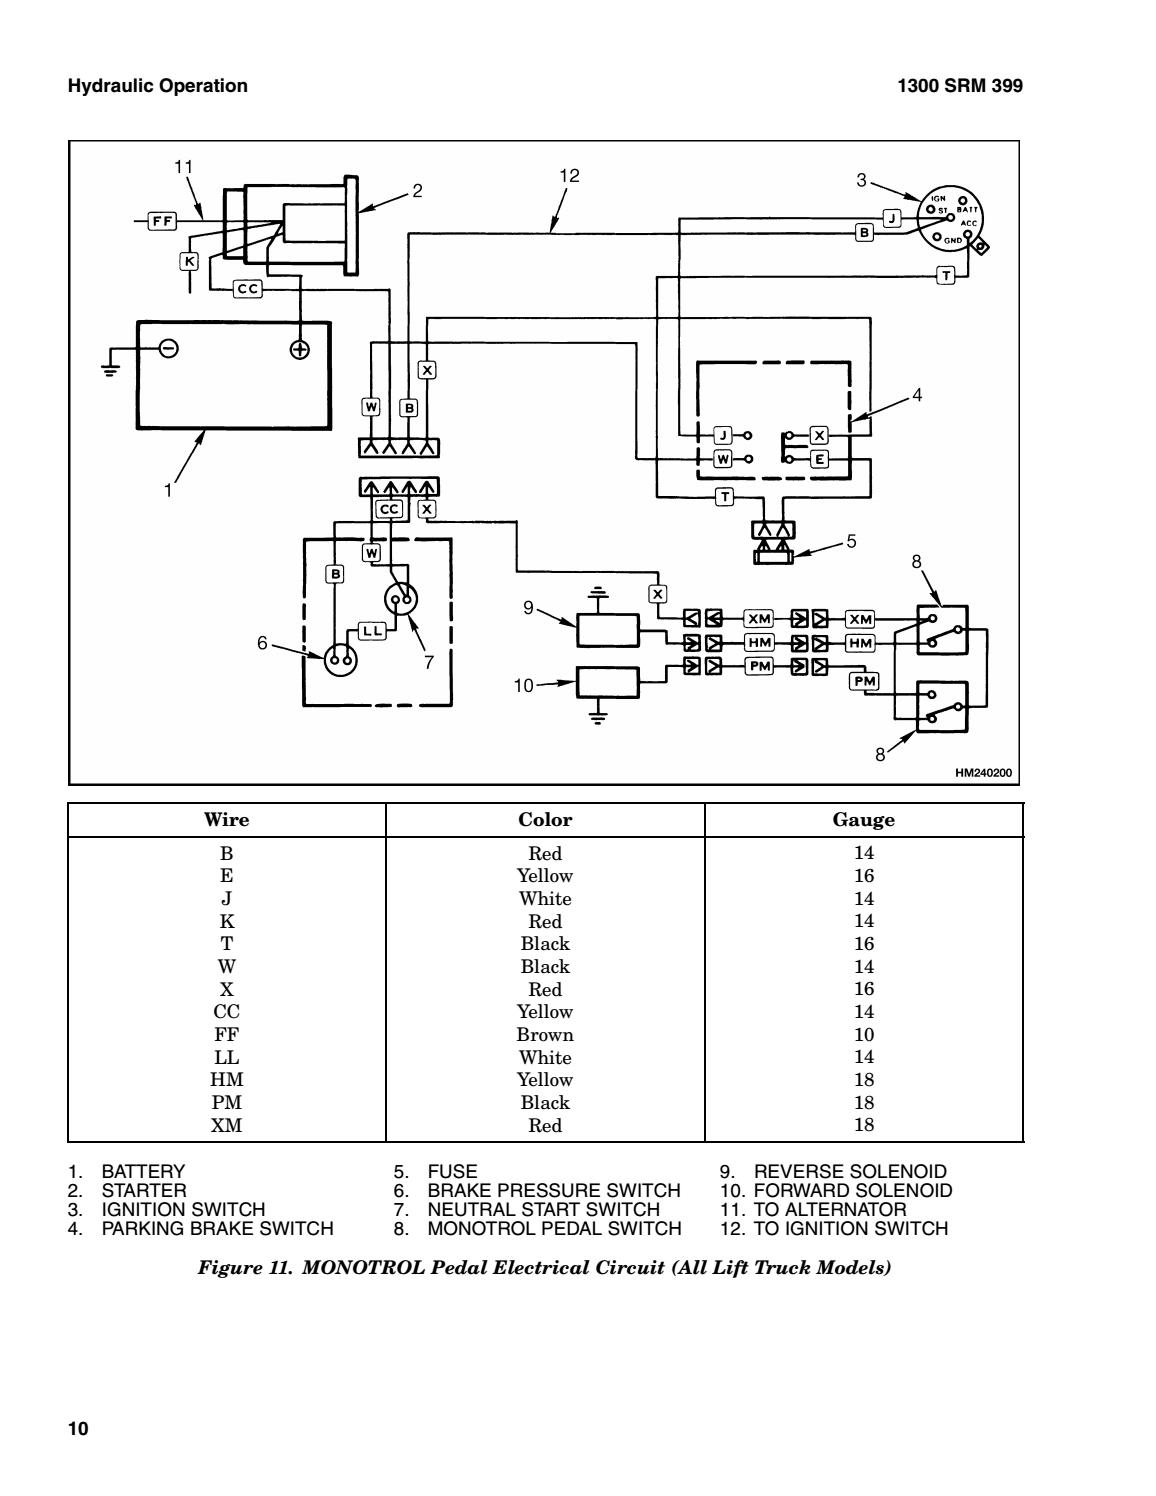 Hyster 100 Wiring Diagram - Switched Light Wiring Diagram -  volvos80.los-dodol.jeanjaures37.fr | Hyster 100 Wiring Diagram |  | Wiring Diagram Resource